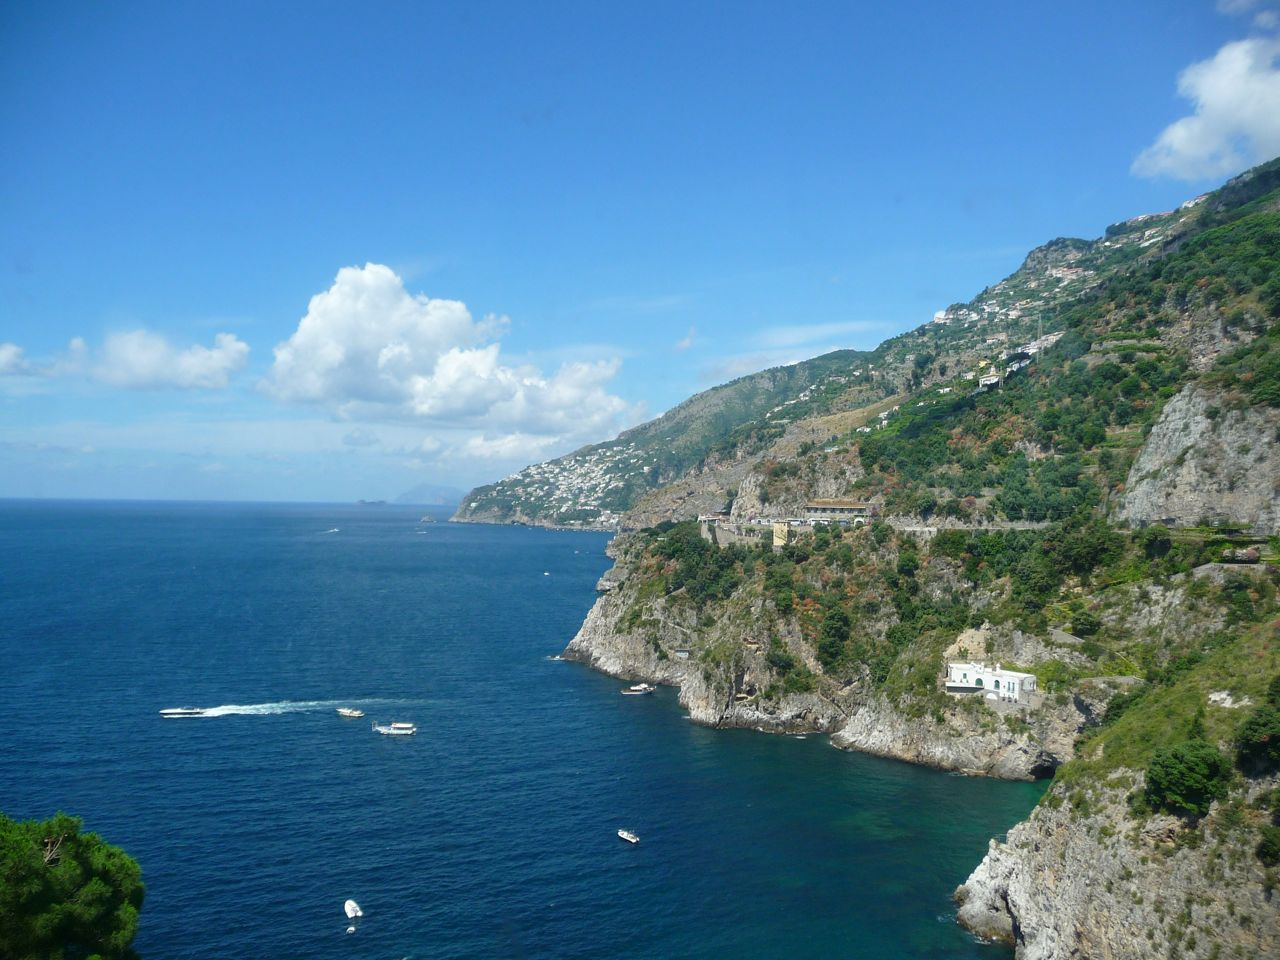 A Day on The Amalfi Coast